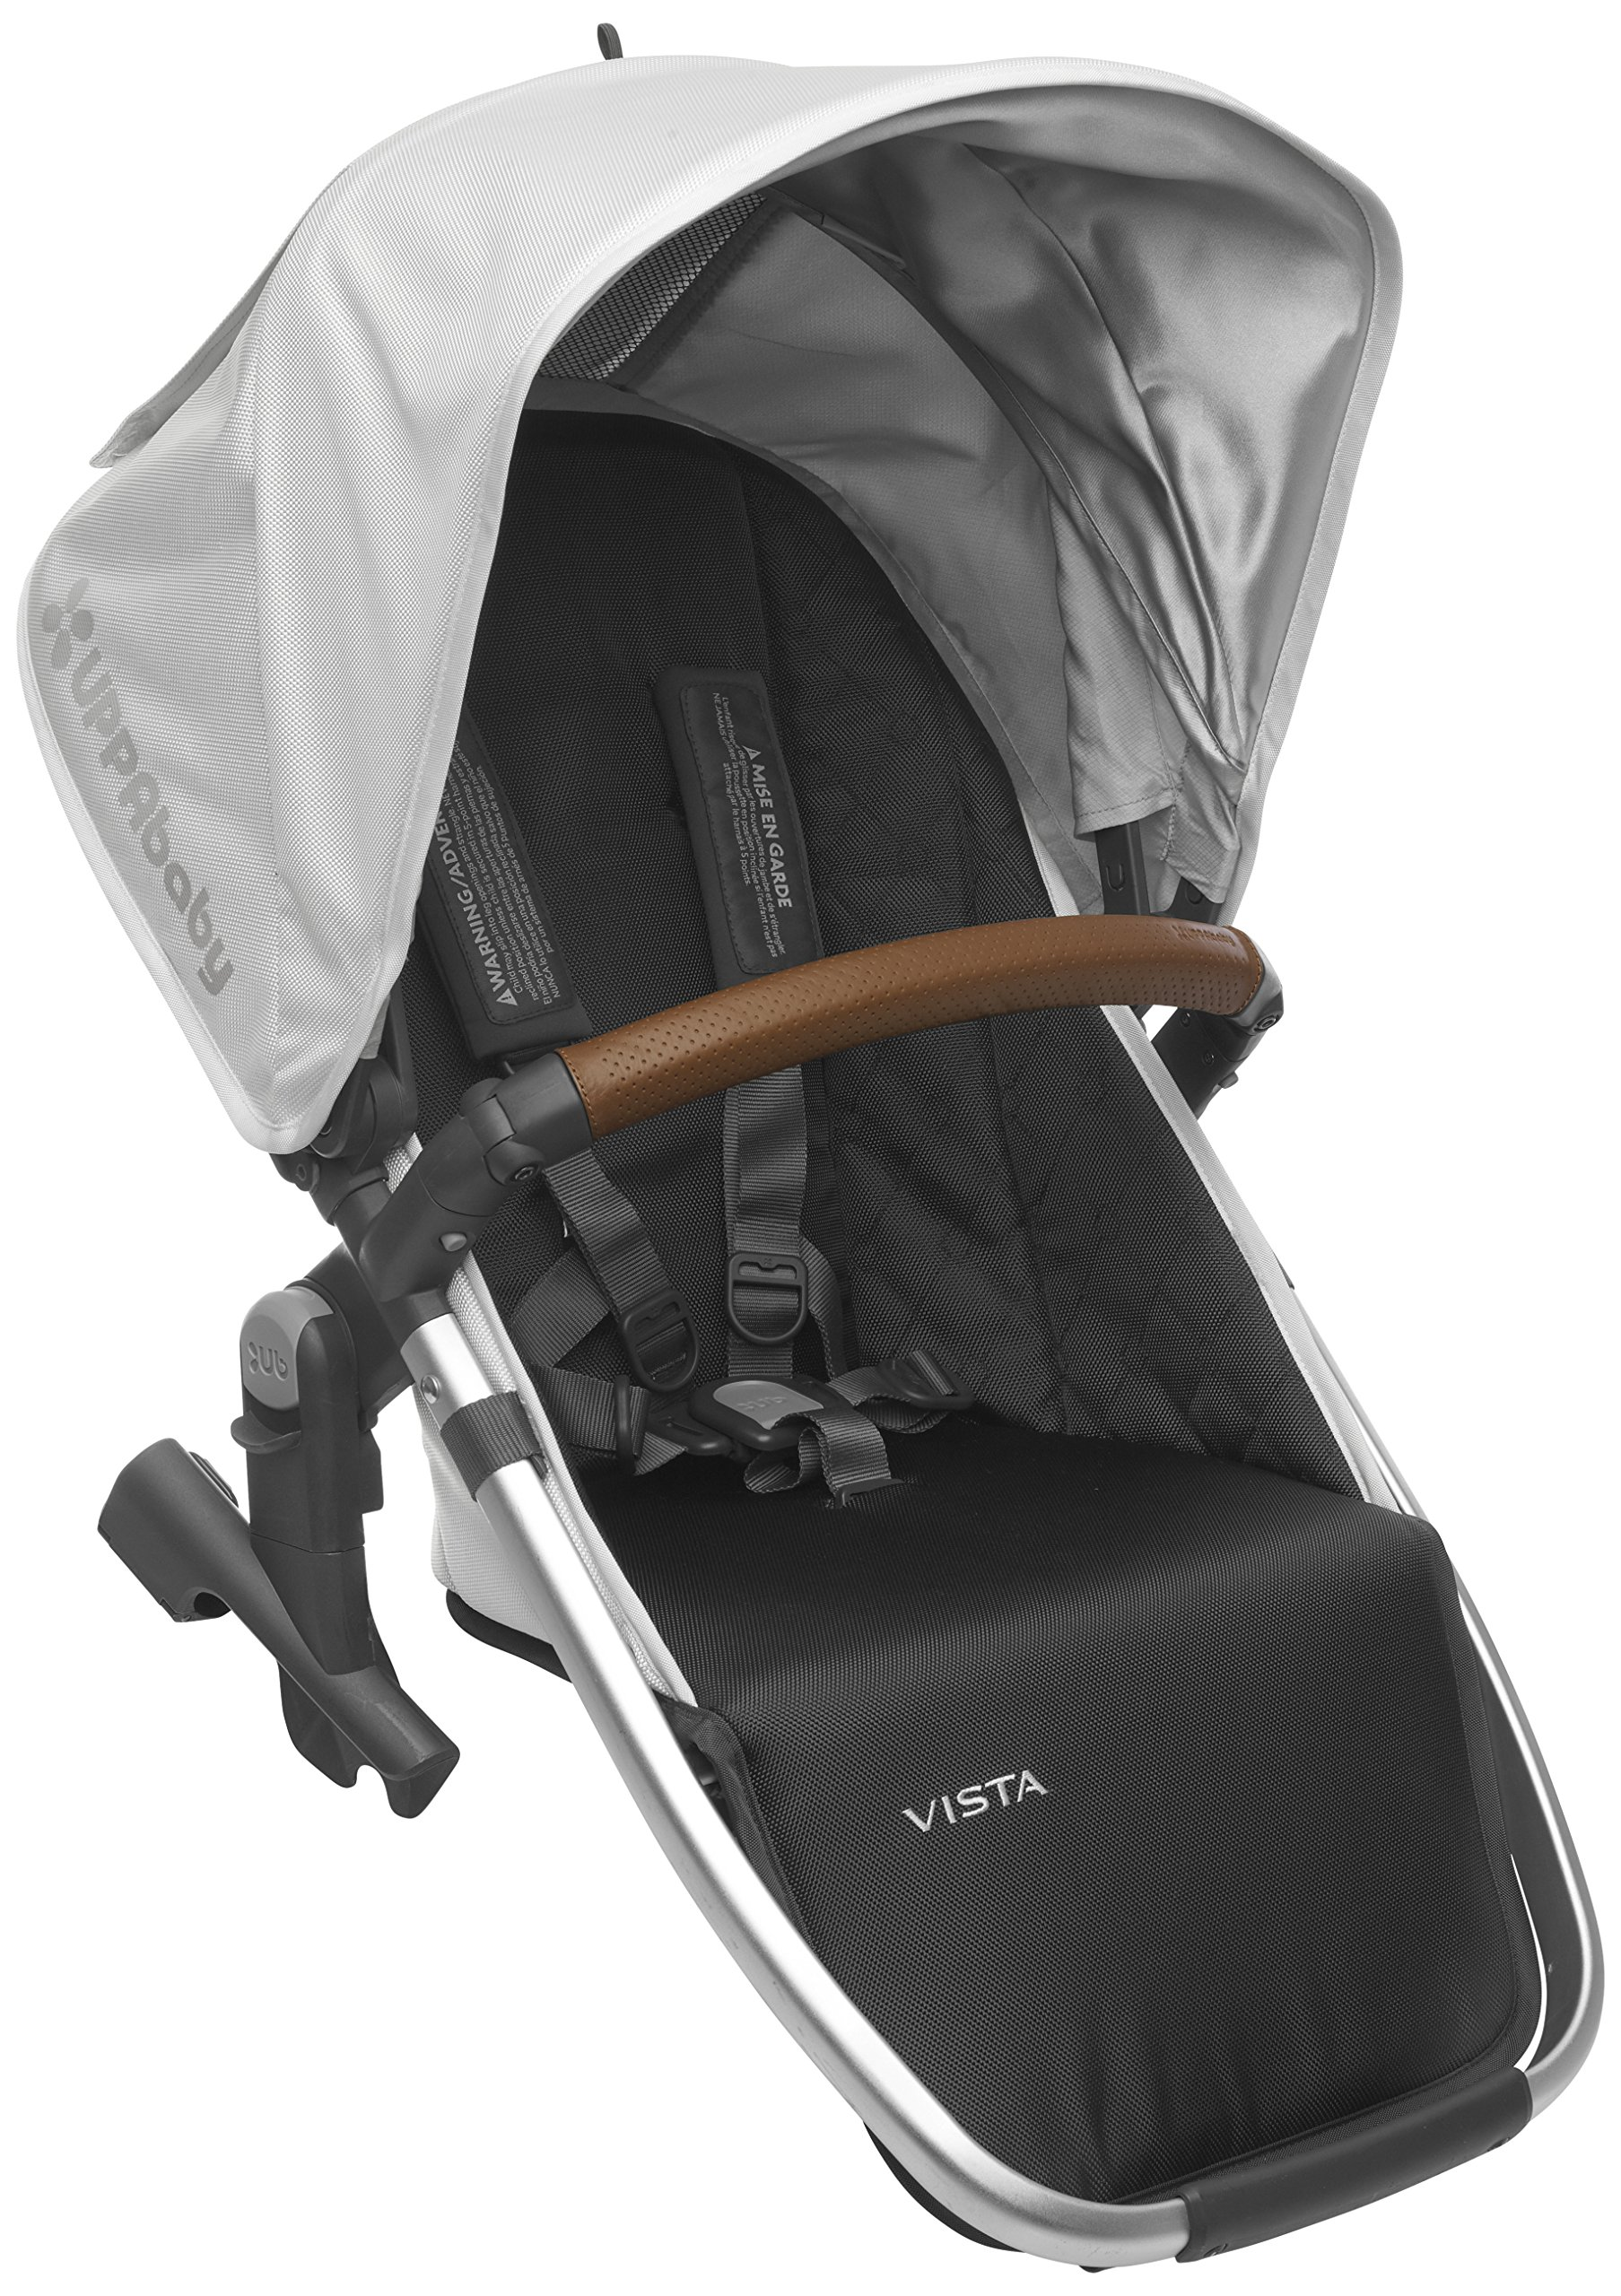 2018 UPPAbaby Vista RumbleSeat - Loic (White/Silver/Saddle Leather) by UPPAbaby (Image #1)